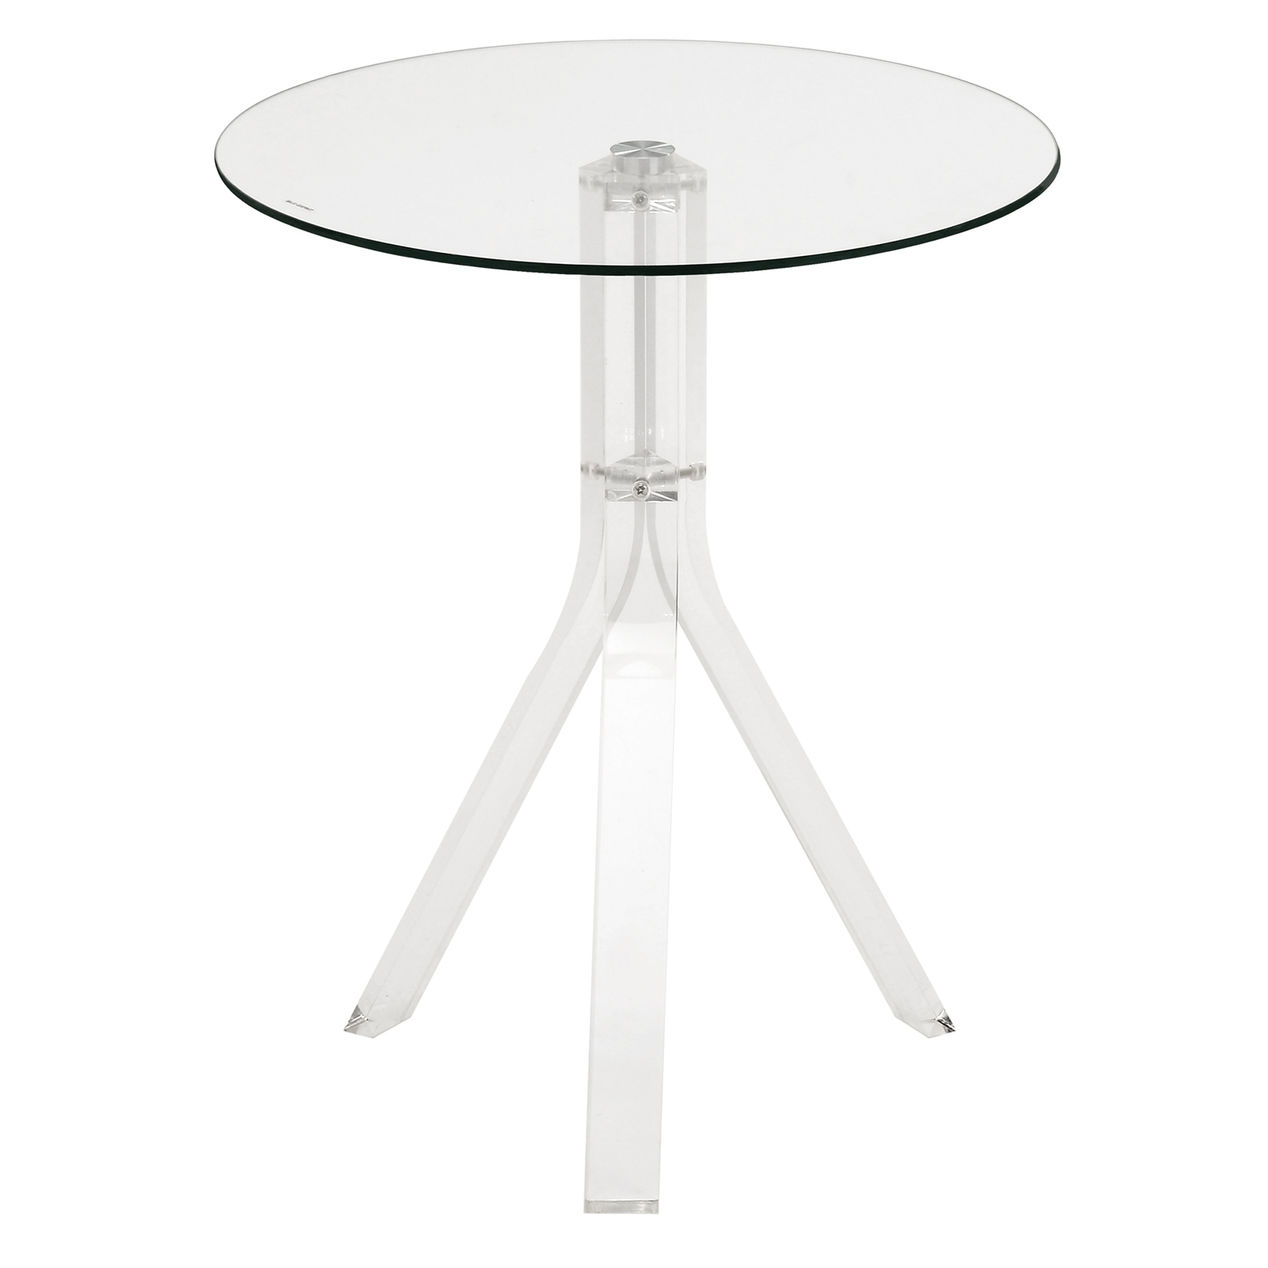 acrylic round accent table home white metal couch ideas brown outdoor side usb coffee dining room with leaf lamps contemporary design cement base pine wood ikea kids bedroom